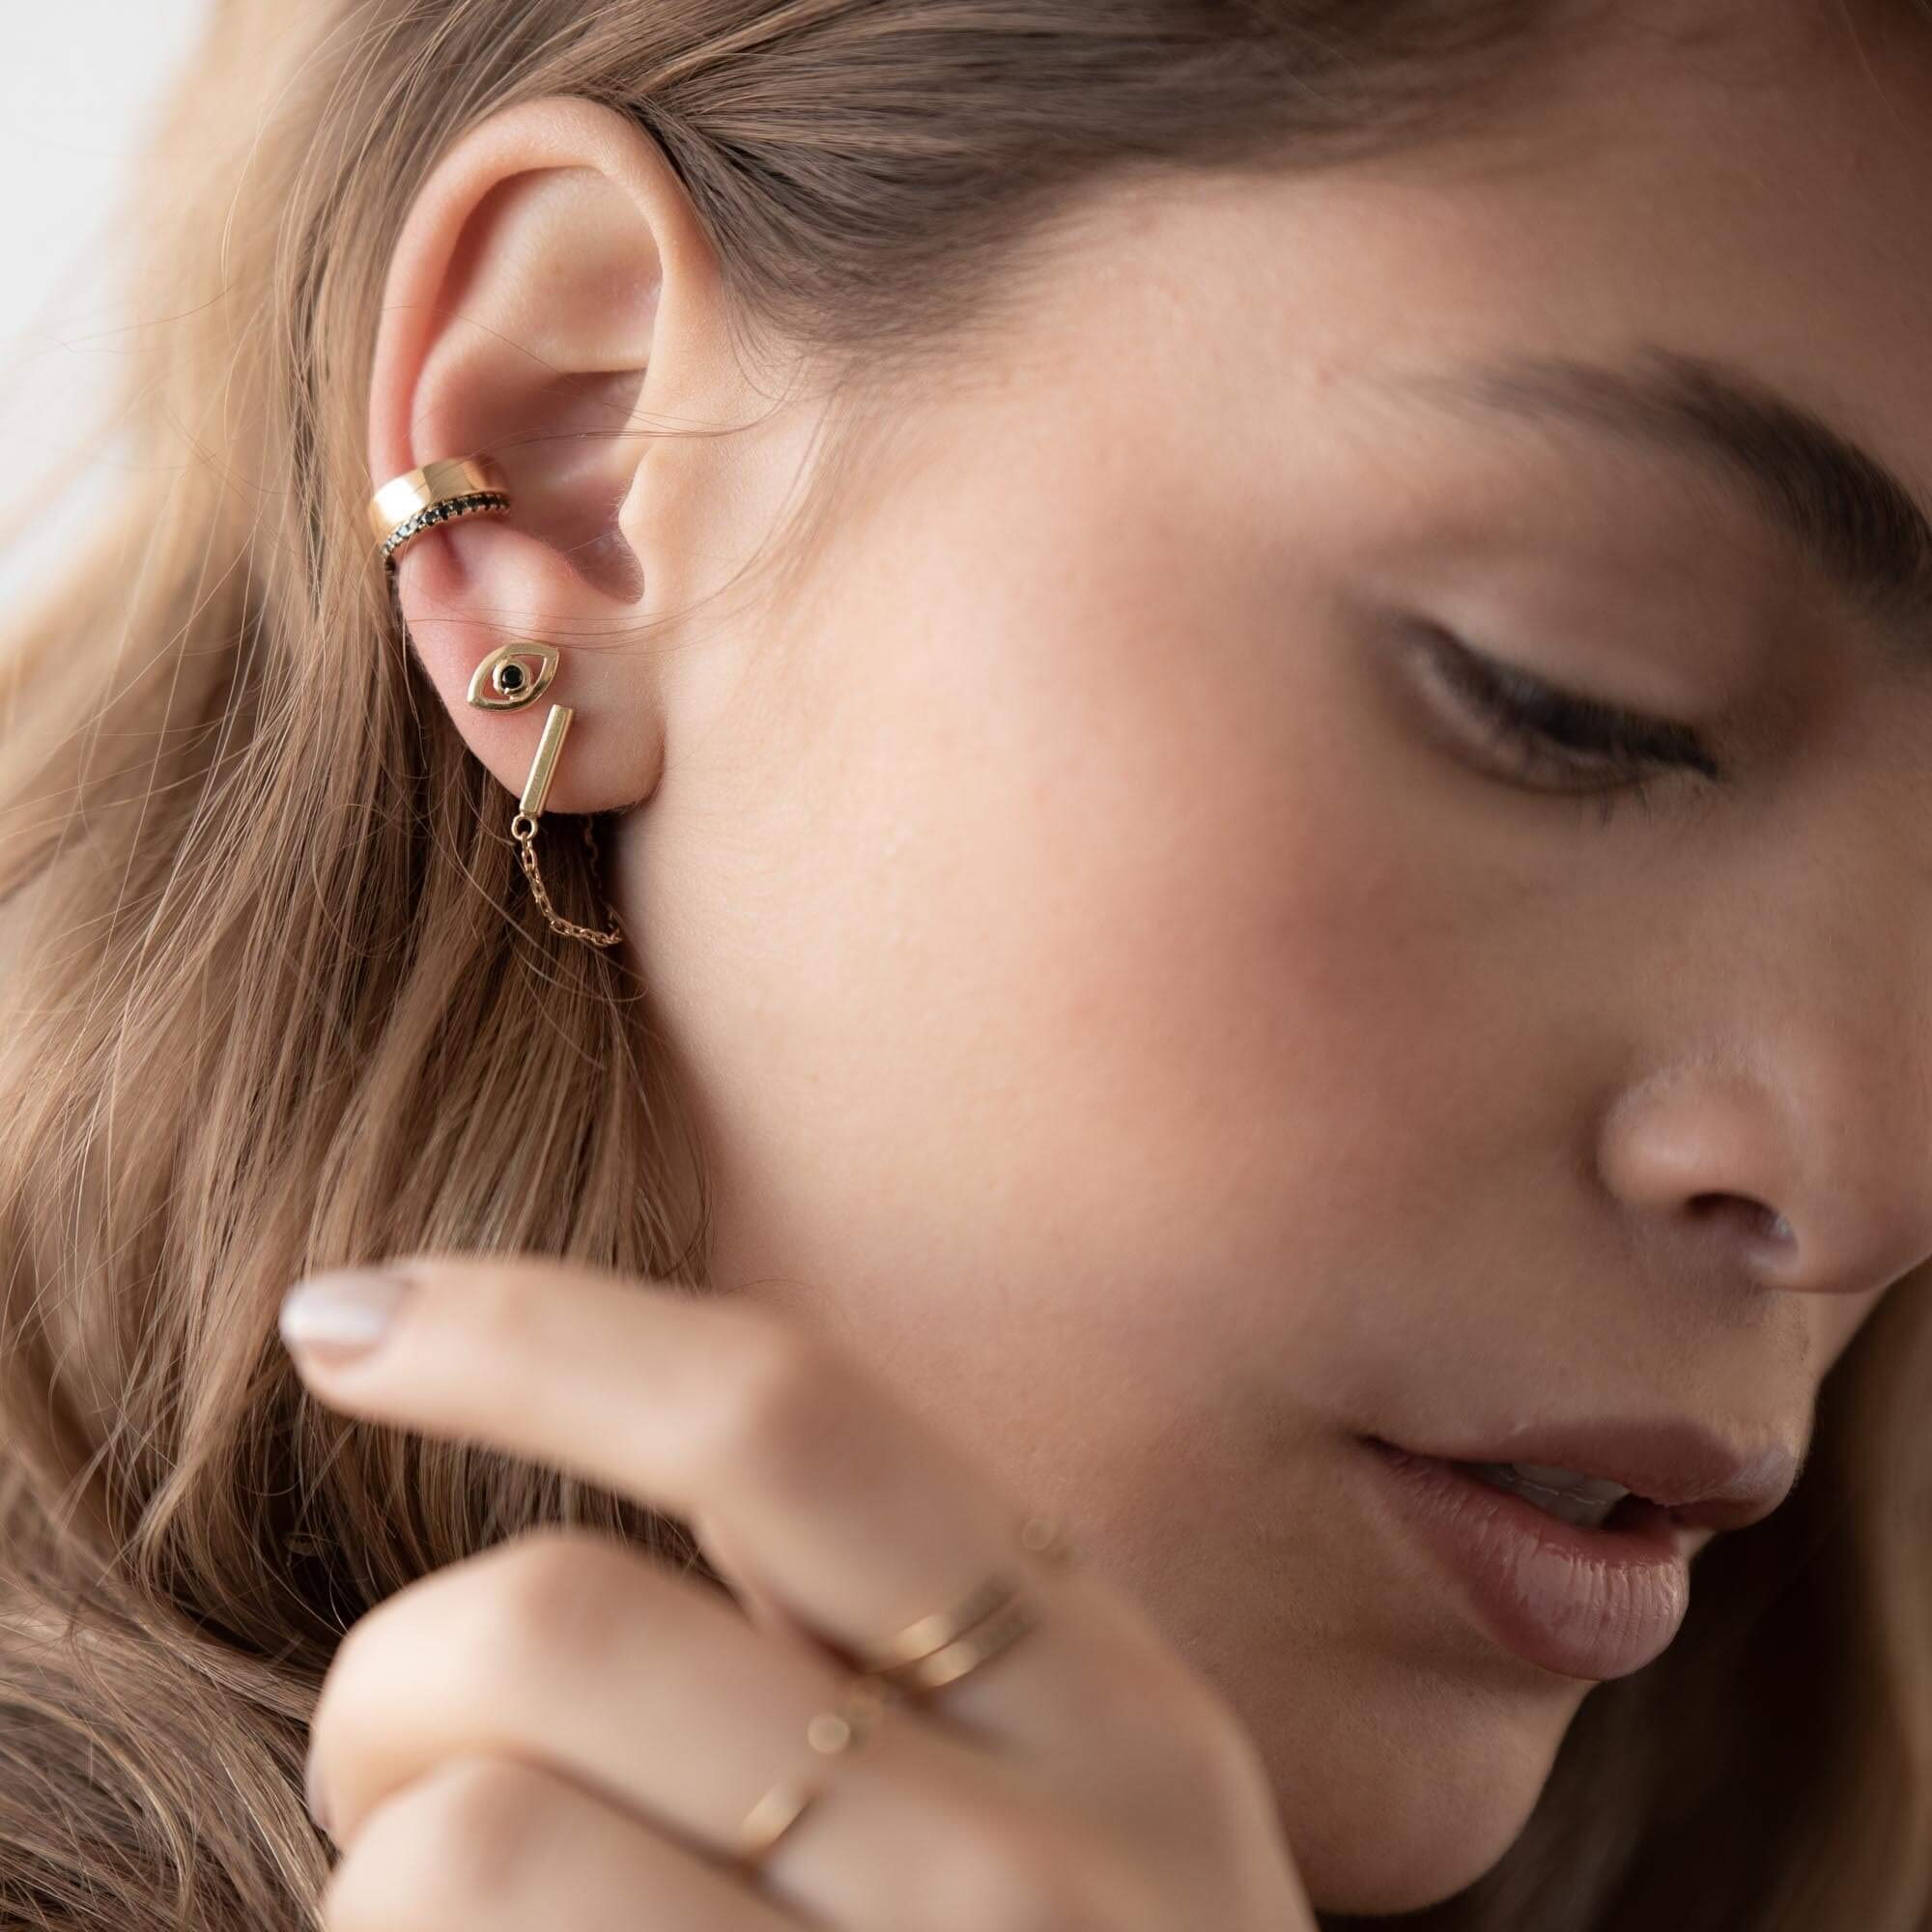 Drop Bar Earrings with Line Chain in Silver/Gold - Staple Bar Line Cable Studs for Her - Minimalist Modern Design by Galis (Gold-Plated)